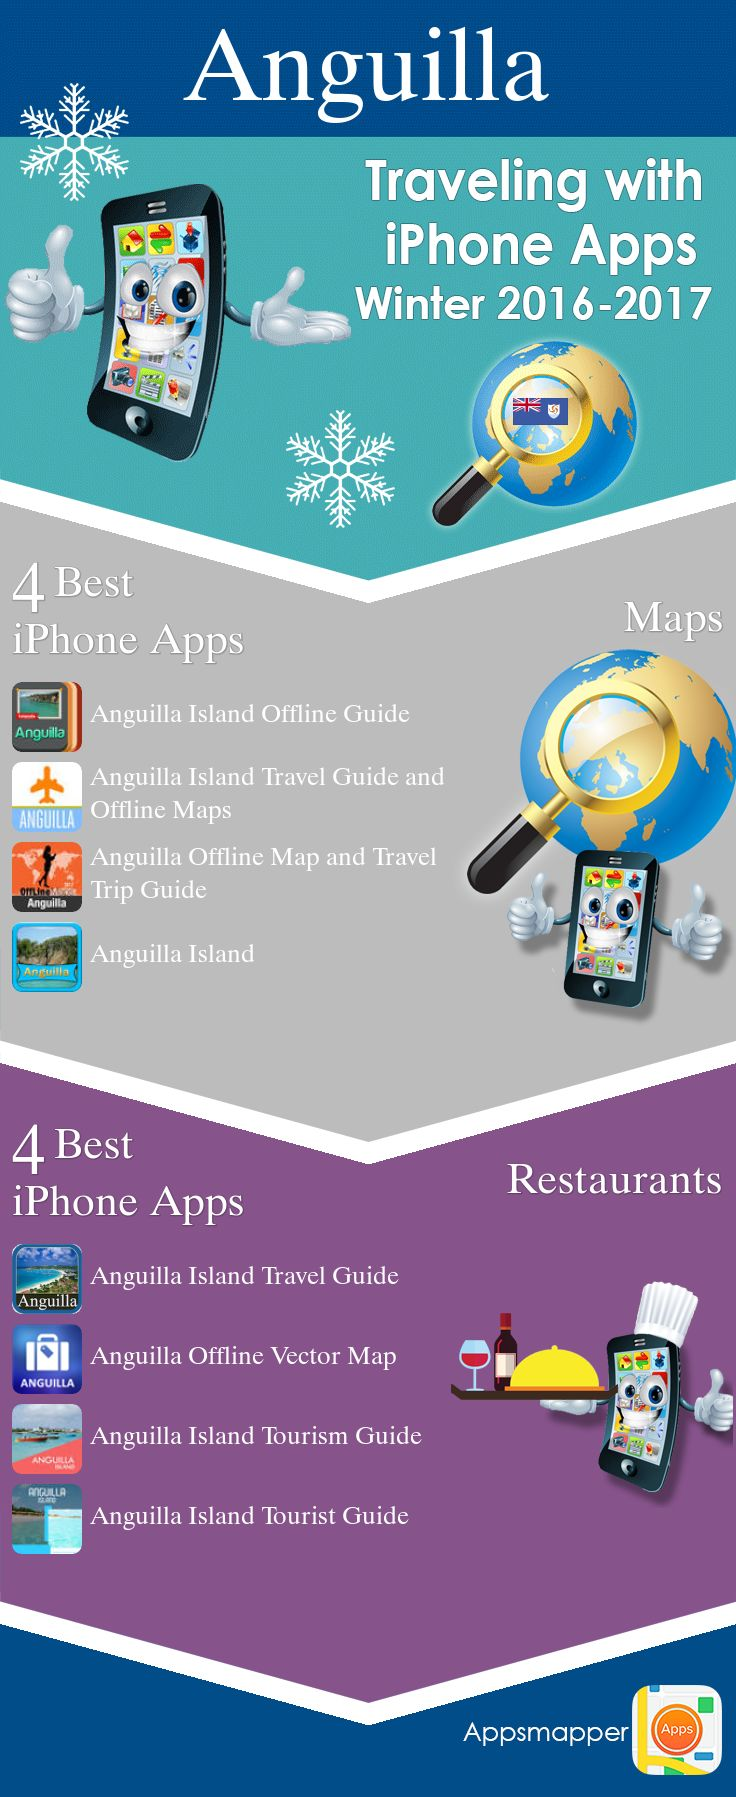 10 best Travel apps for Anguilla images on Pinterest Bicycles